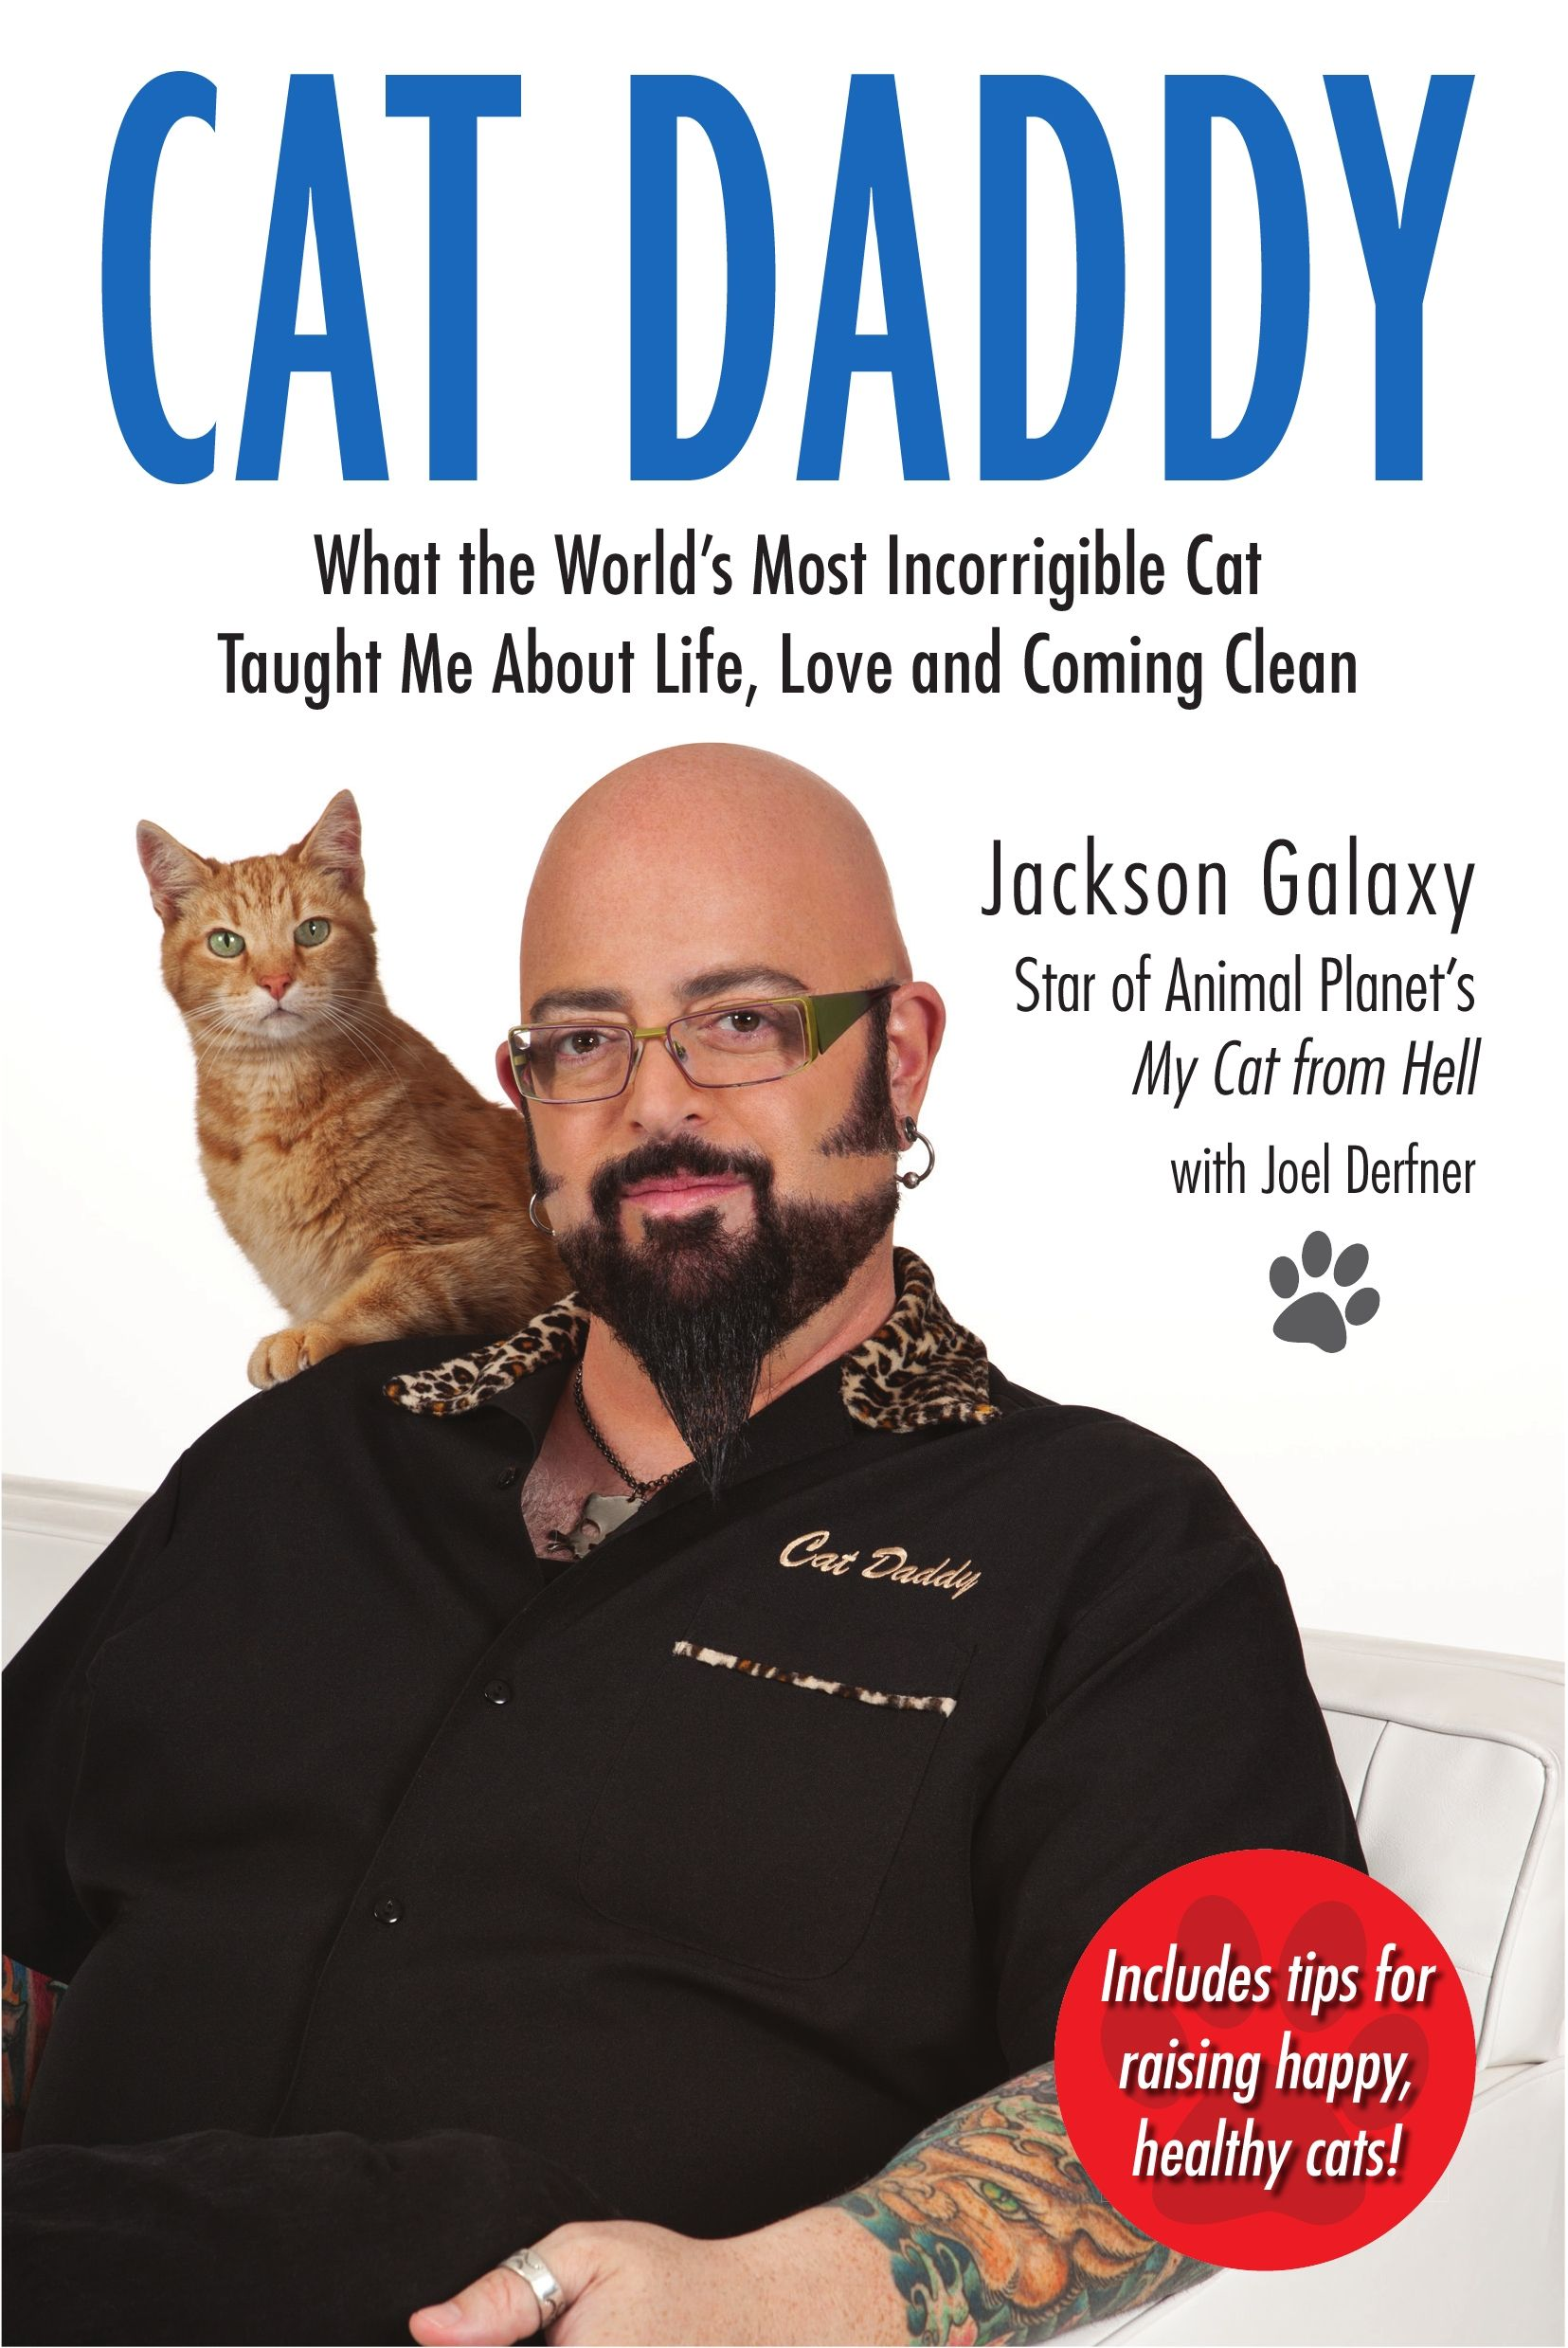 Cat Daddy By Jackson Galaxy Great For People Like Me Who Are Interested In Animal Behavior Studies Jackson Galaxy Cat Daddy Cat Books